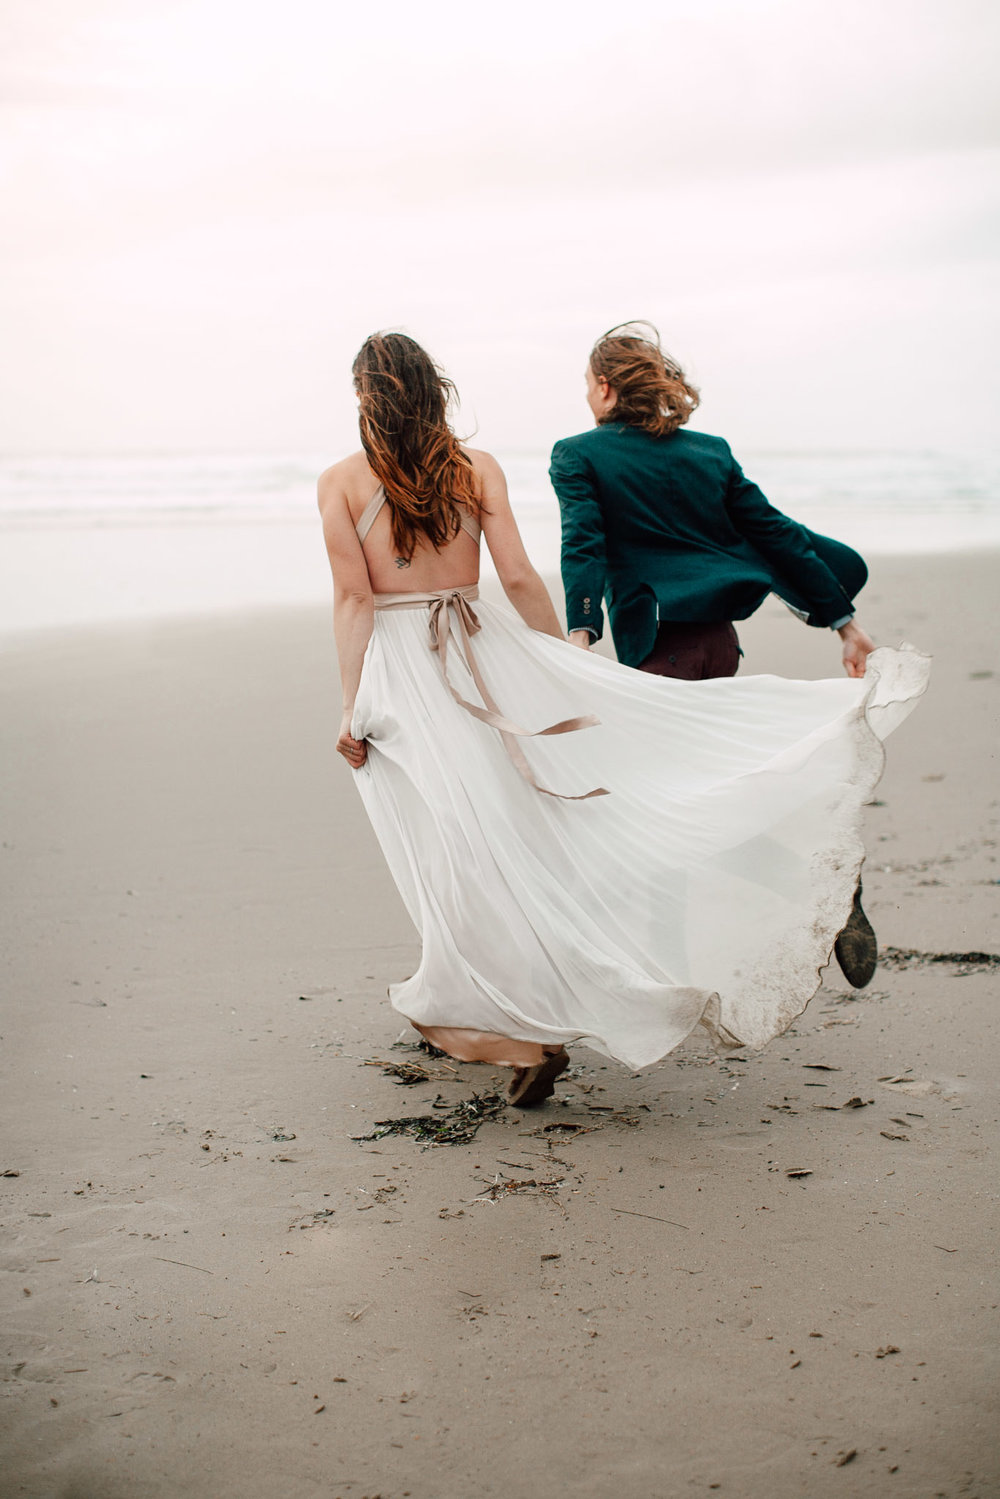 Oregon-Coast-Manzanita-Beach-Engagement-Pia-Anna-Christian-Wedding-Photography-PNW-GB-18.jpg